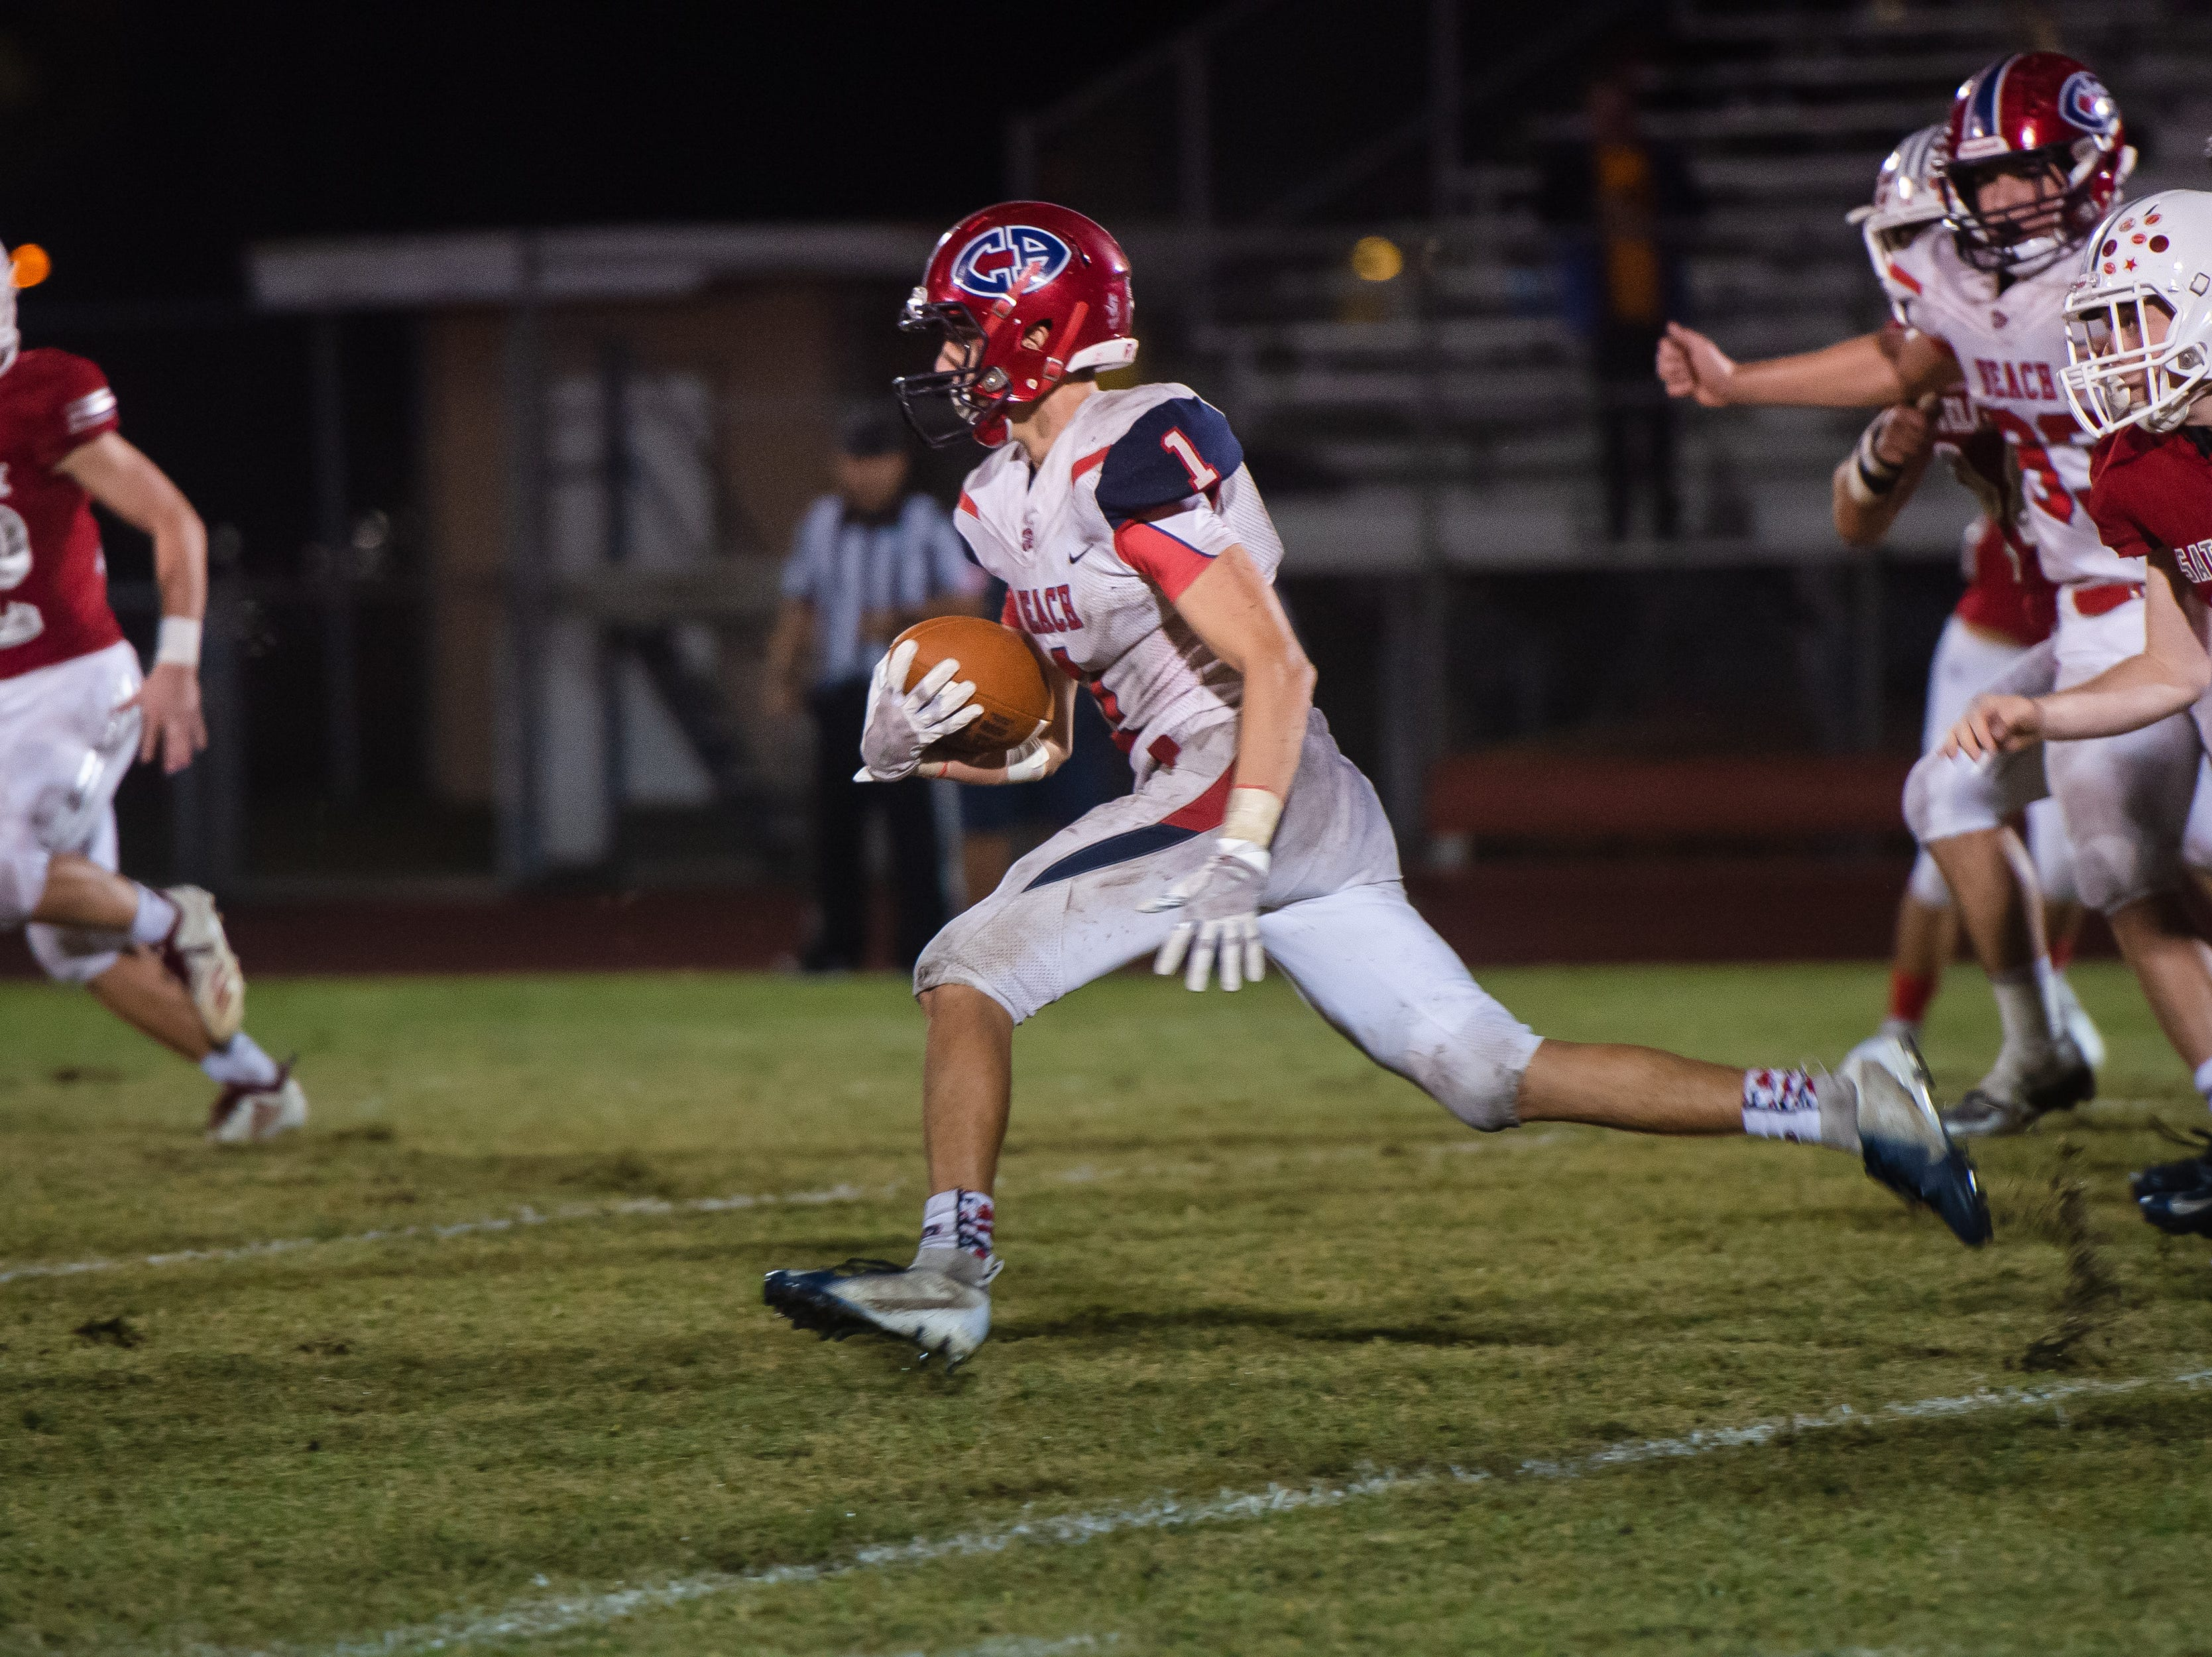 Ryan Tsarnas carries the ball for Cocoa Beach during the game against Satellite High.